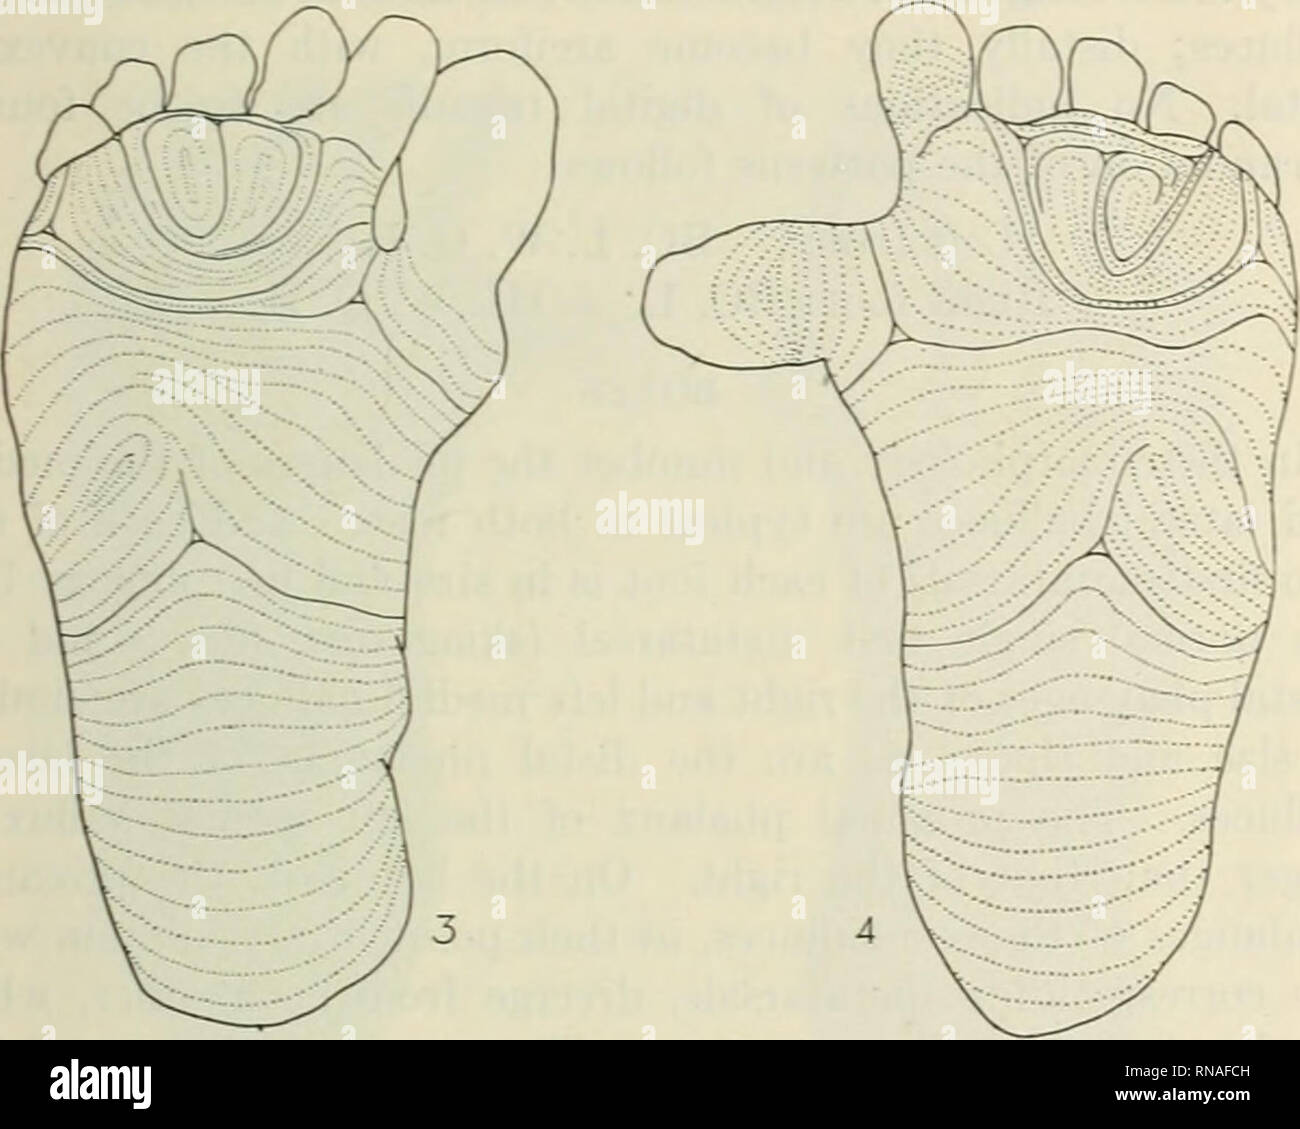 . The Anatomical record 1922-1923. Anatomy. A CASE OF HYPERDACTYLISM 215 around the lateral border of the second interdigital area, and its ridges then become continuous with the transverseh' placed ridges in the depressed region of sole area at the bases of the toes. In the left foot the loop becomes confluent with the tMrd in- terdigital area. In both feet the third interdigital area is an open field; in the right foot it opens at the distal margin of the. Fig. 3 Epidermal patterns of the sole, right foot; triradii and interpretation lines unbroken; courses of friction ridges shown in dotted - Stock Image